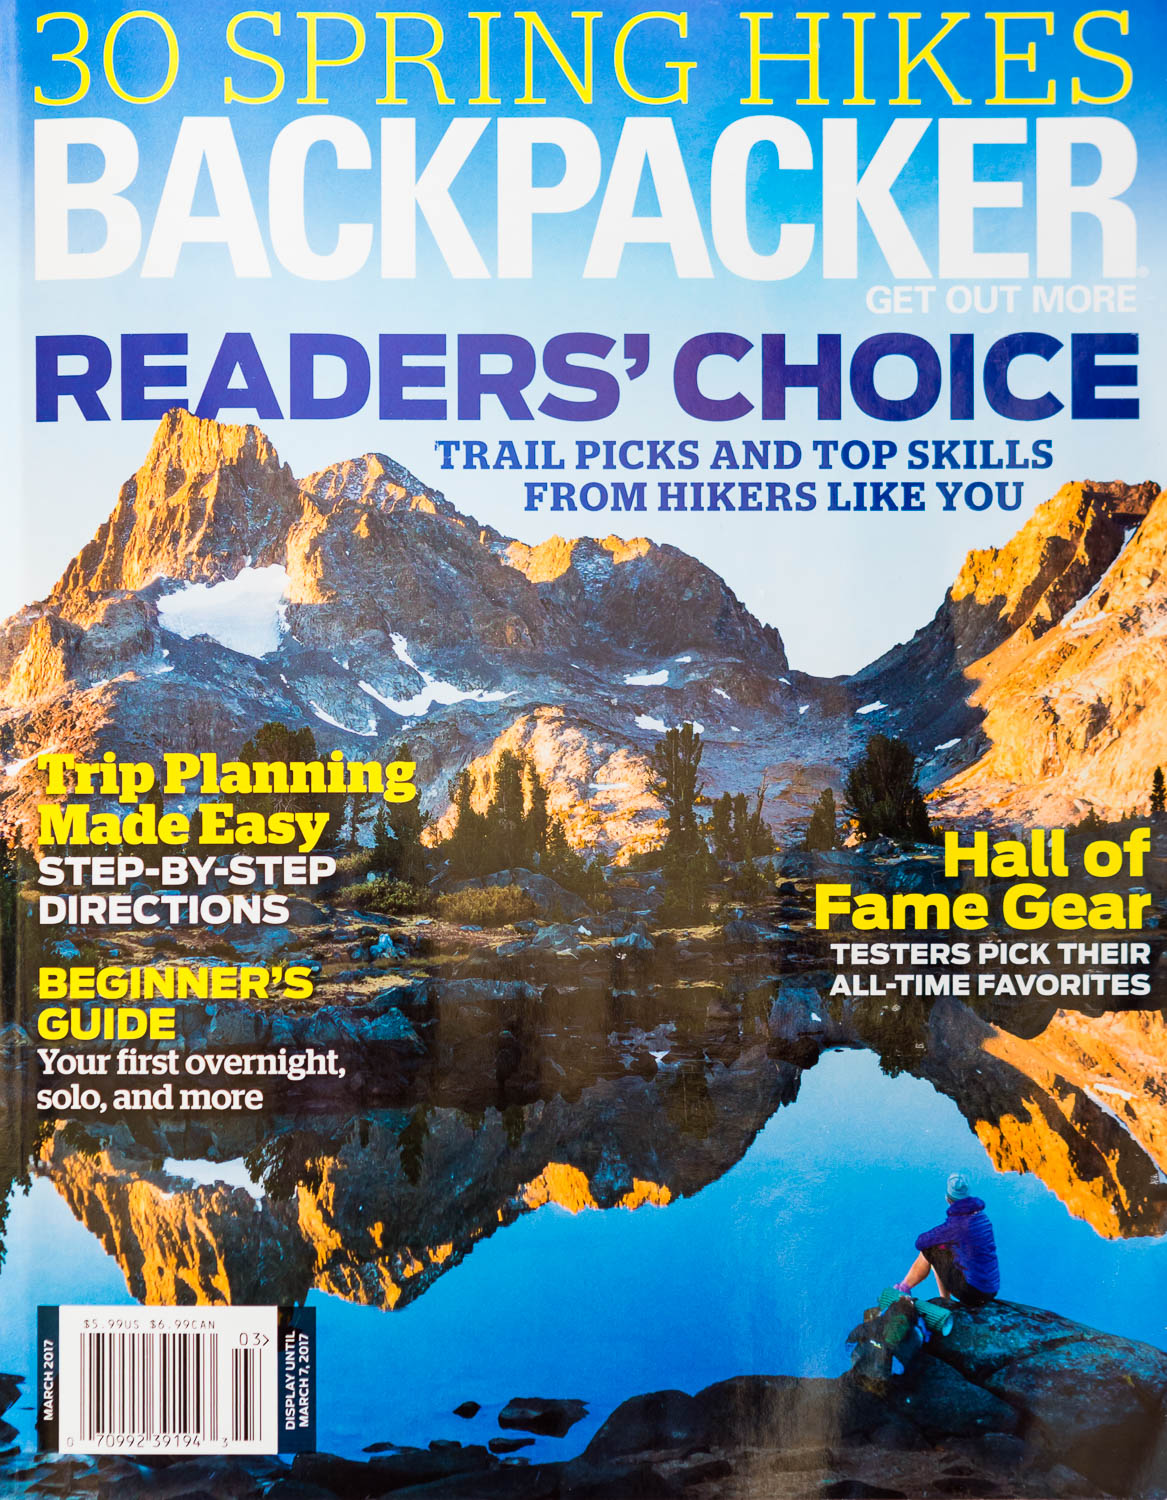 Backpacker Magazine March 2017 Photographer Michael DeYoung